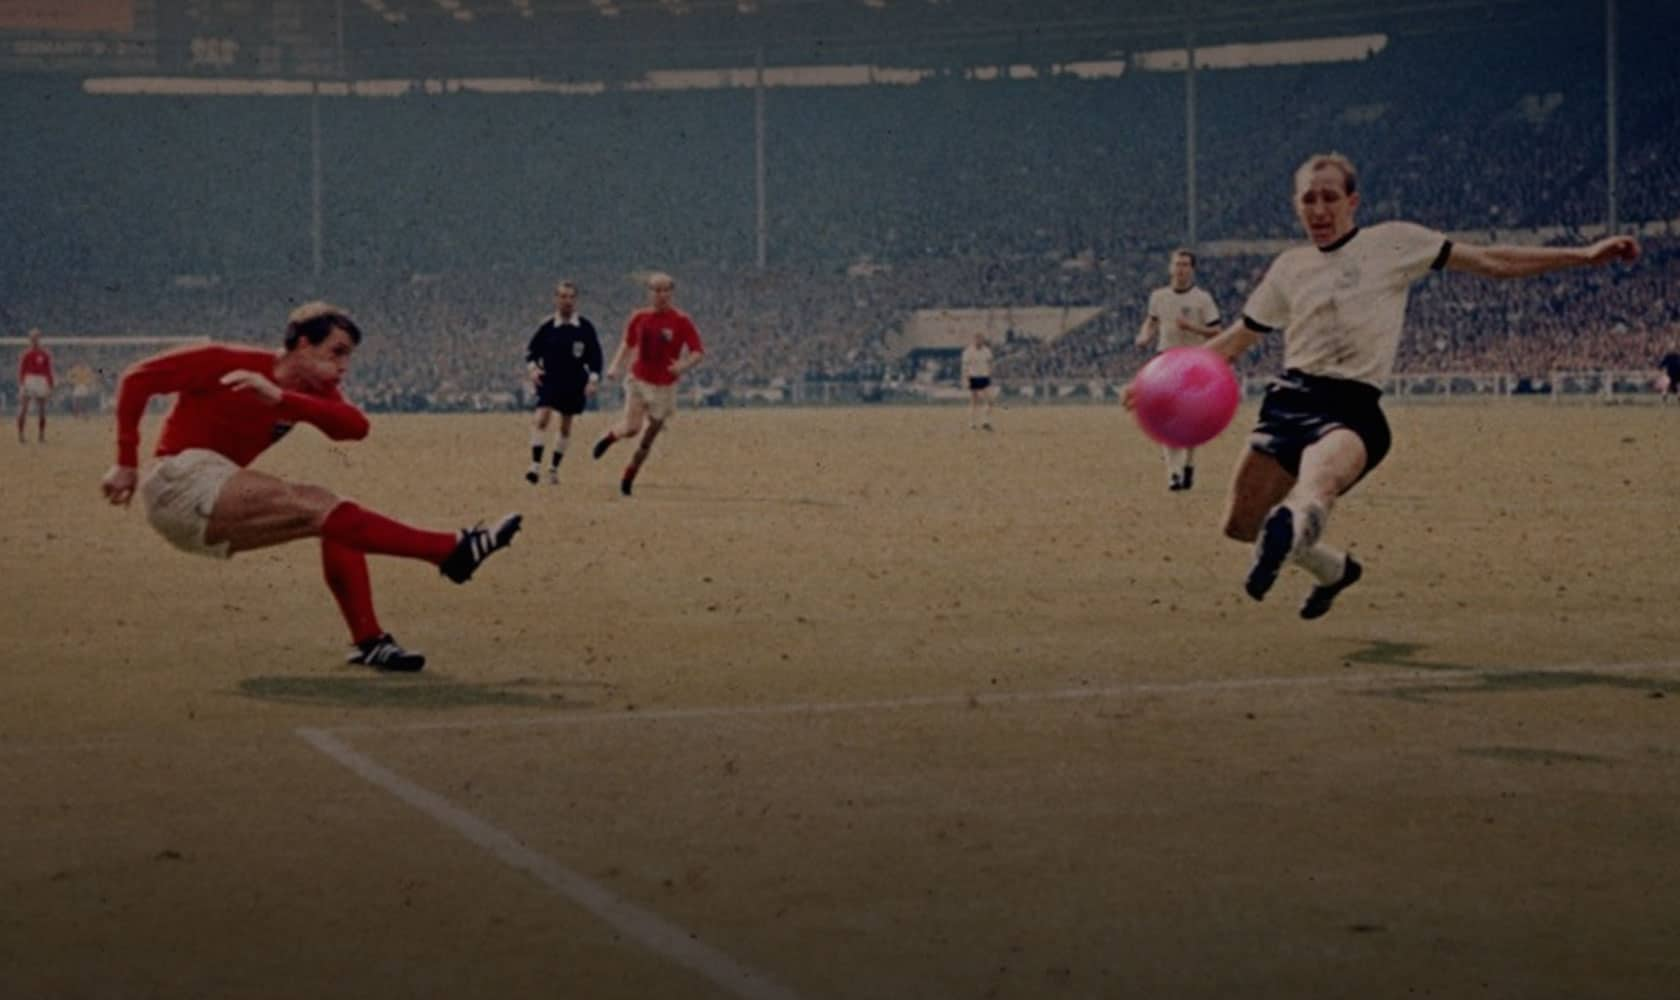 England vs West Germany, 1966. Photo: Graham Smith / Flickr